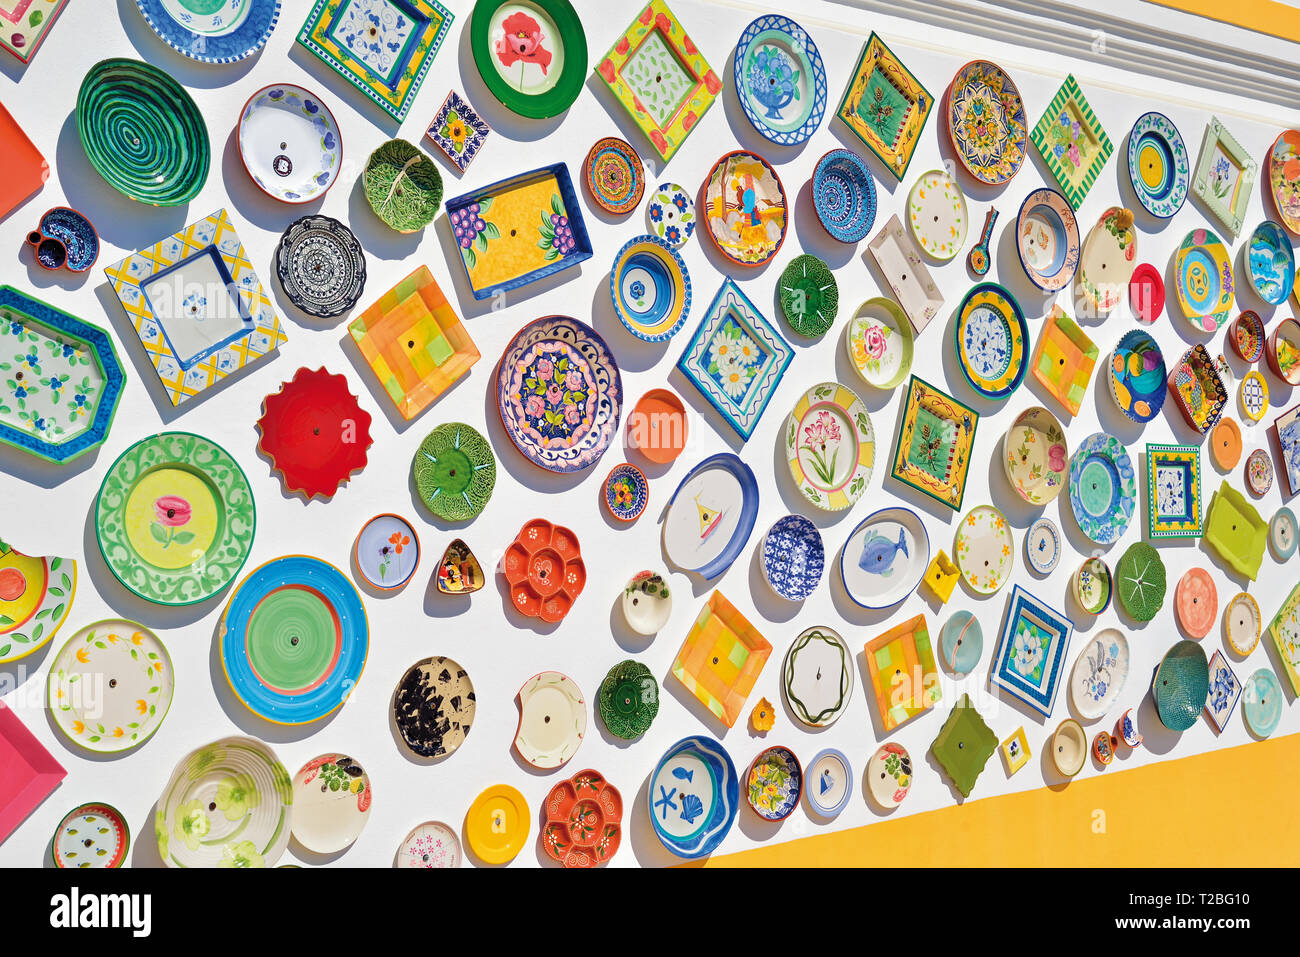 Dozens of colorful ceramic plates contrasting with a white painted outdoor wall on a sunny day - Stock Image